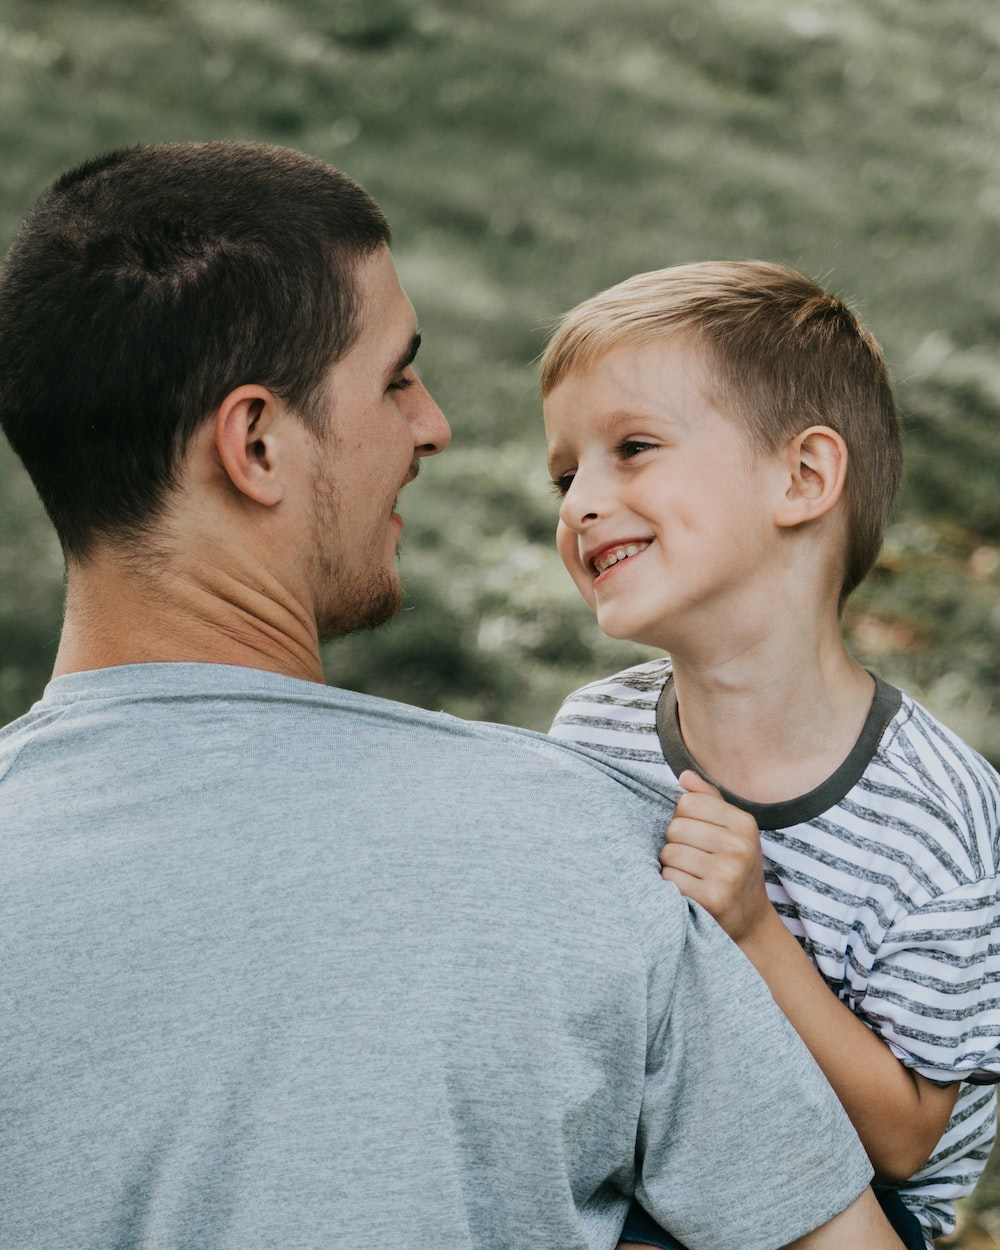 man carrying boy both smiling